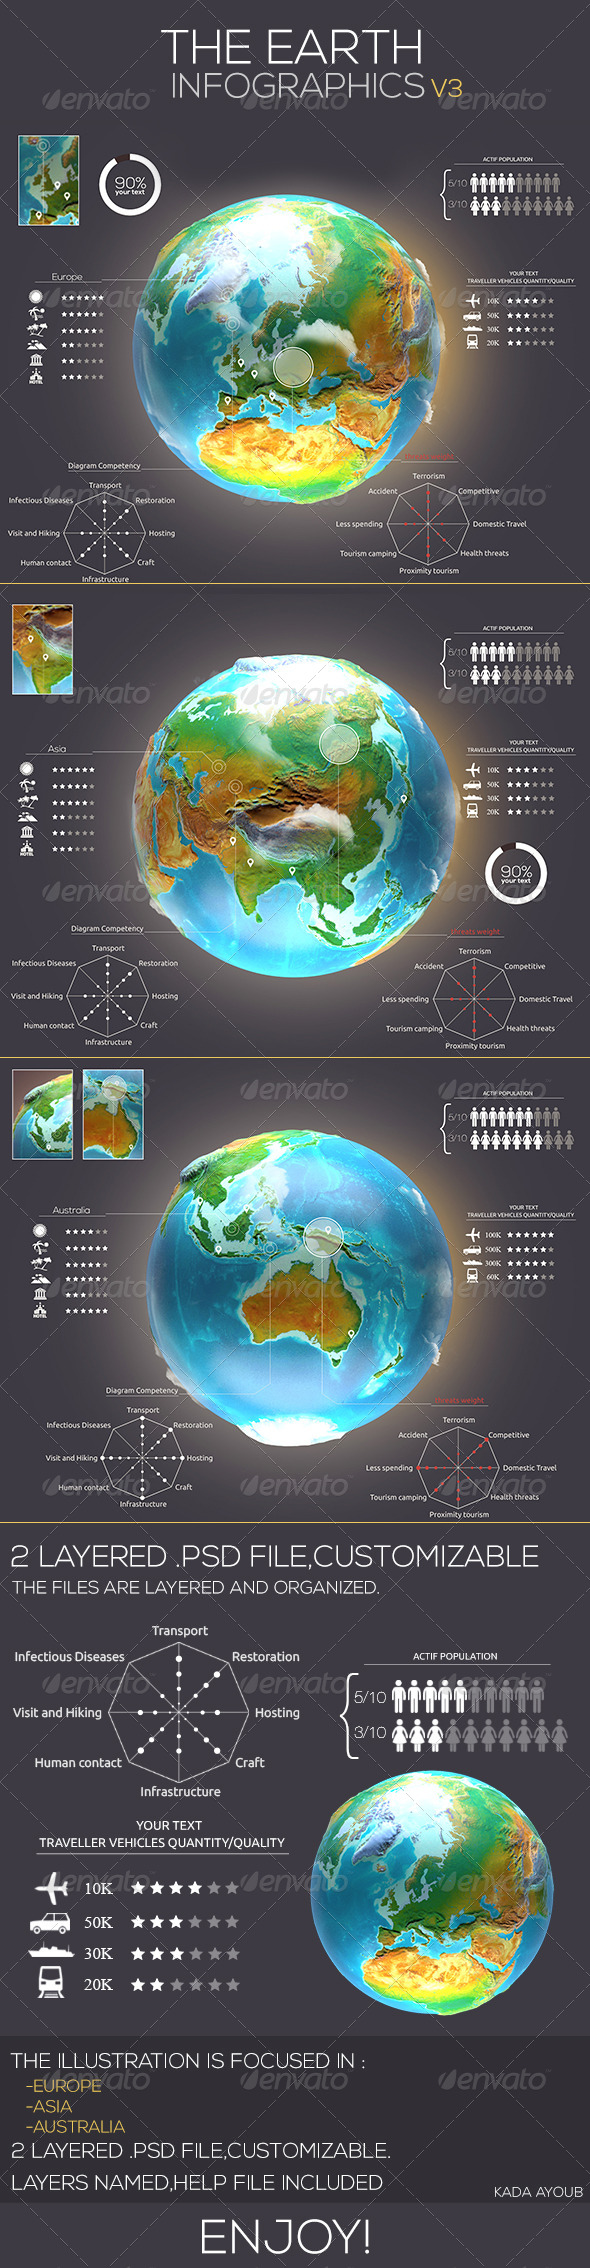 Earth Infographics Travel v3  - Infographics